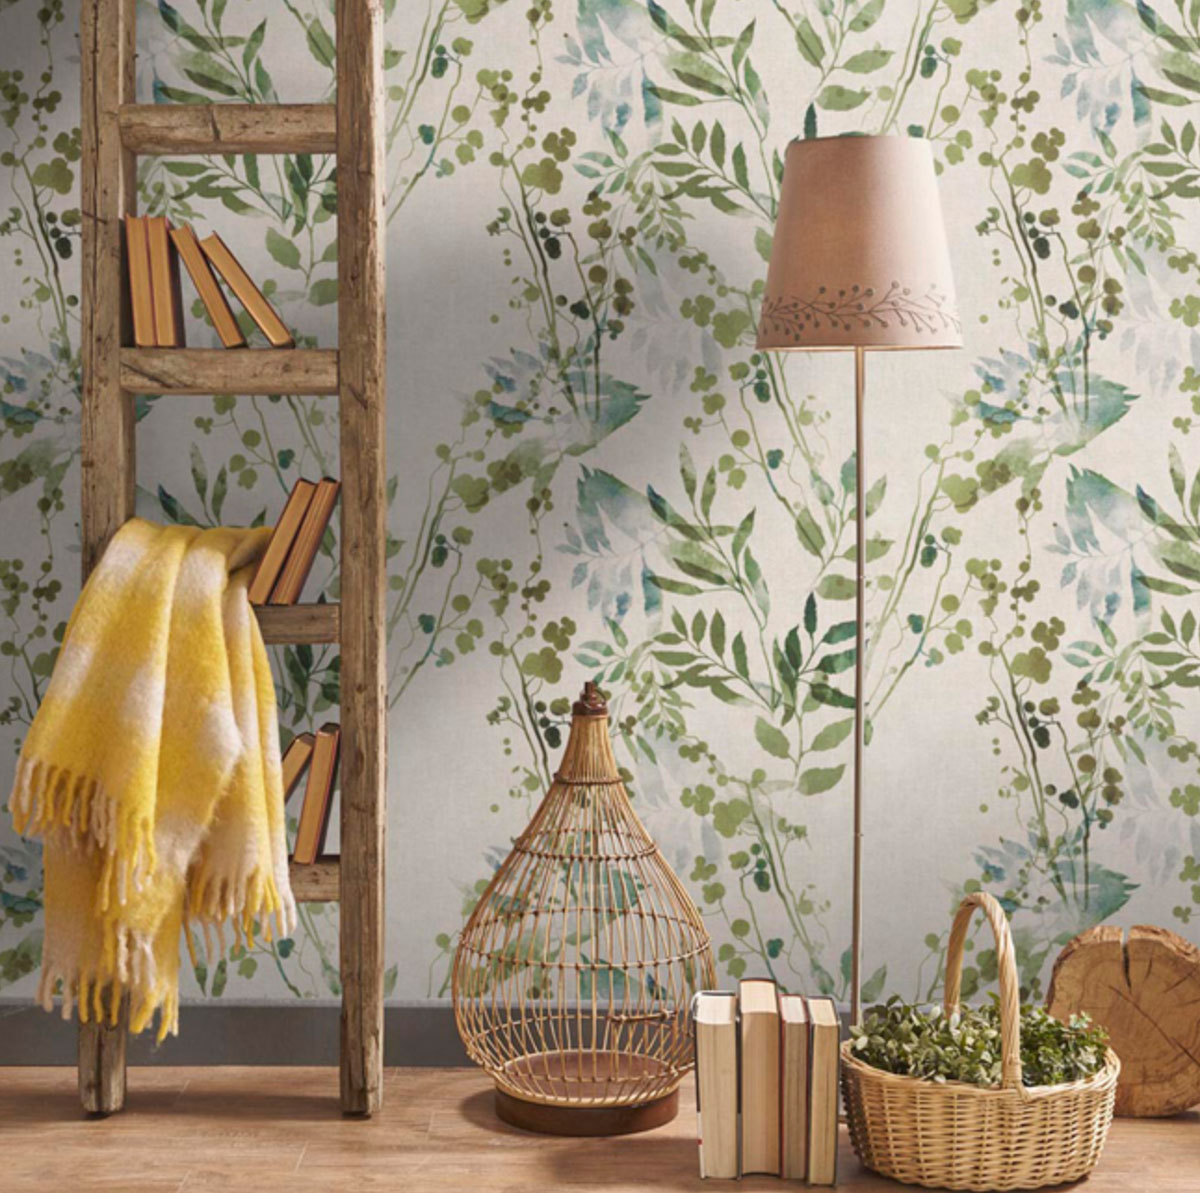 Tendencias Papel Pintado 2019 Decorar Con Papel Pintado